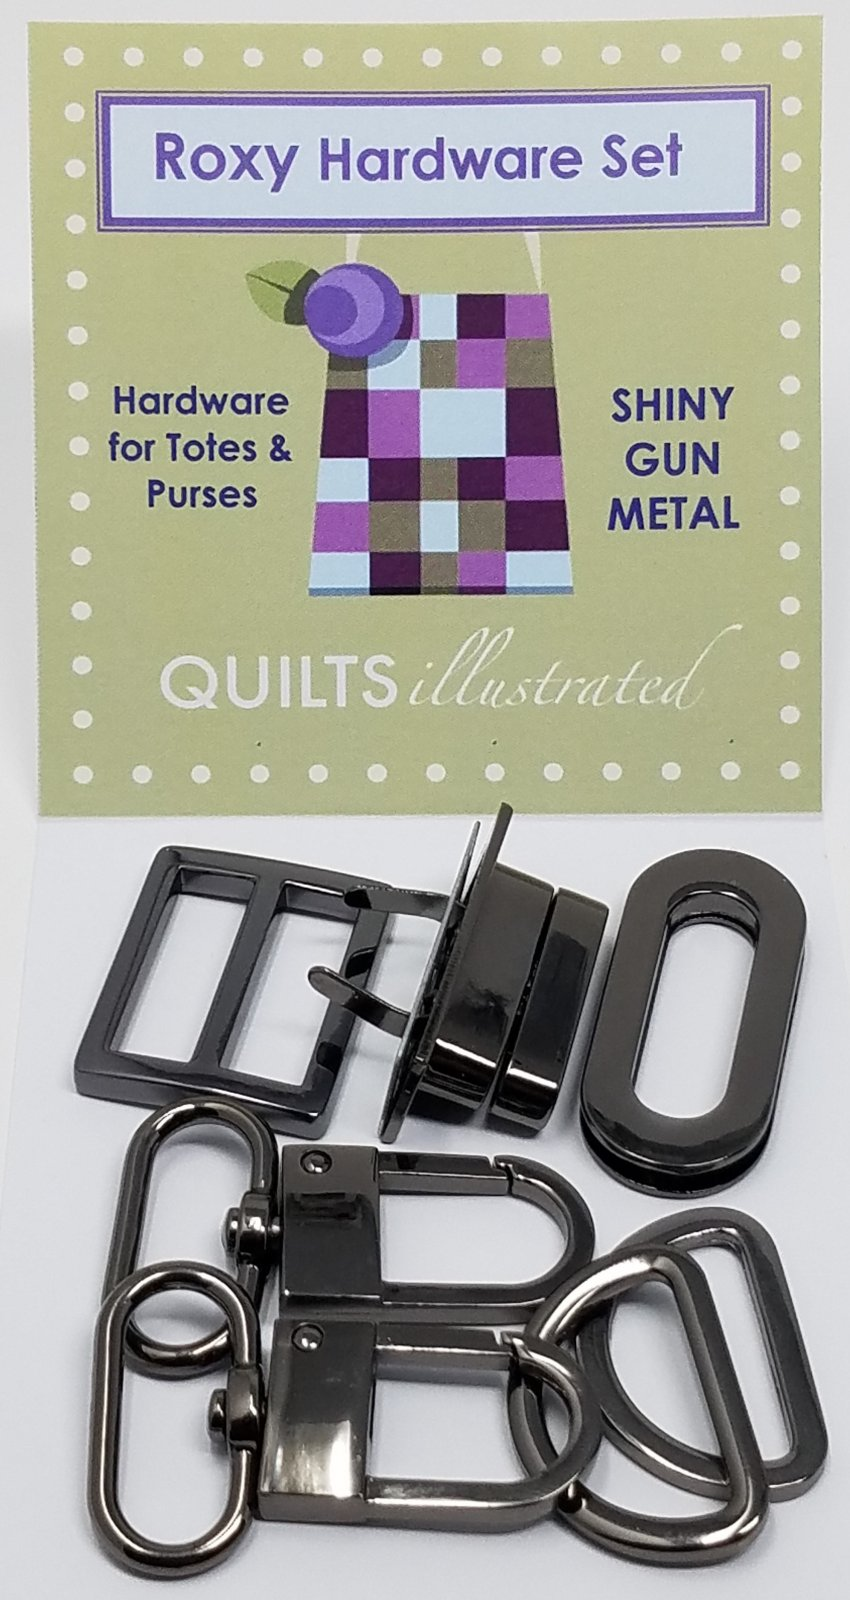 Roxy Hardware Set--Shiny Gunmetal (psh039)